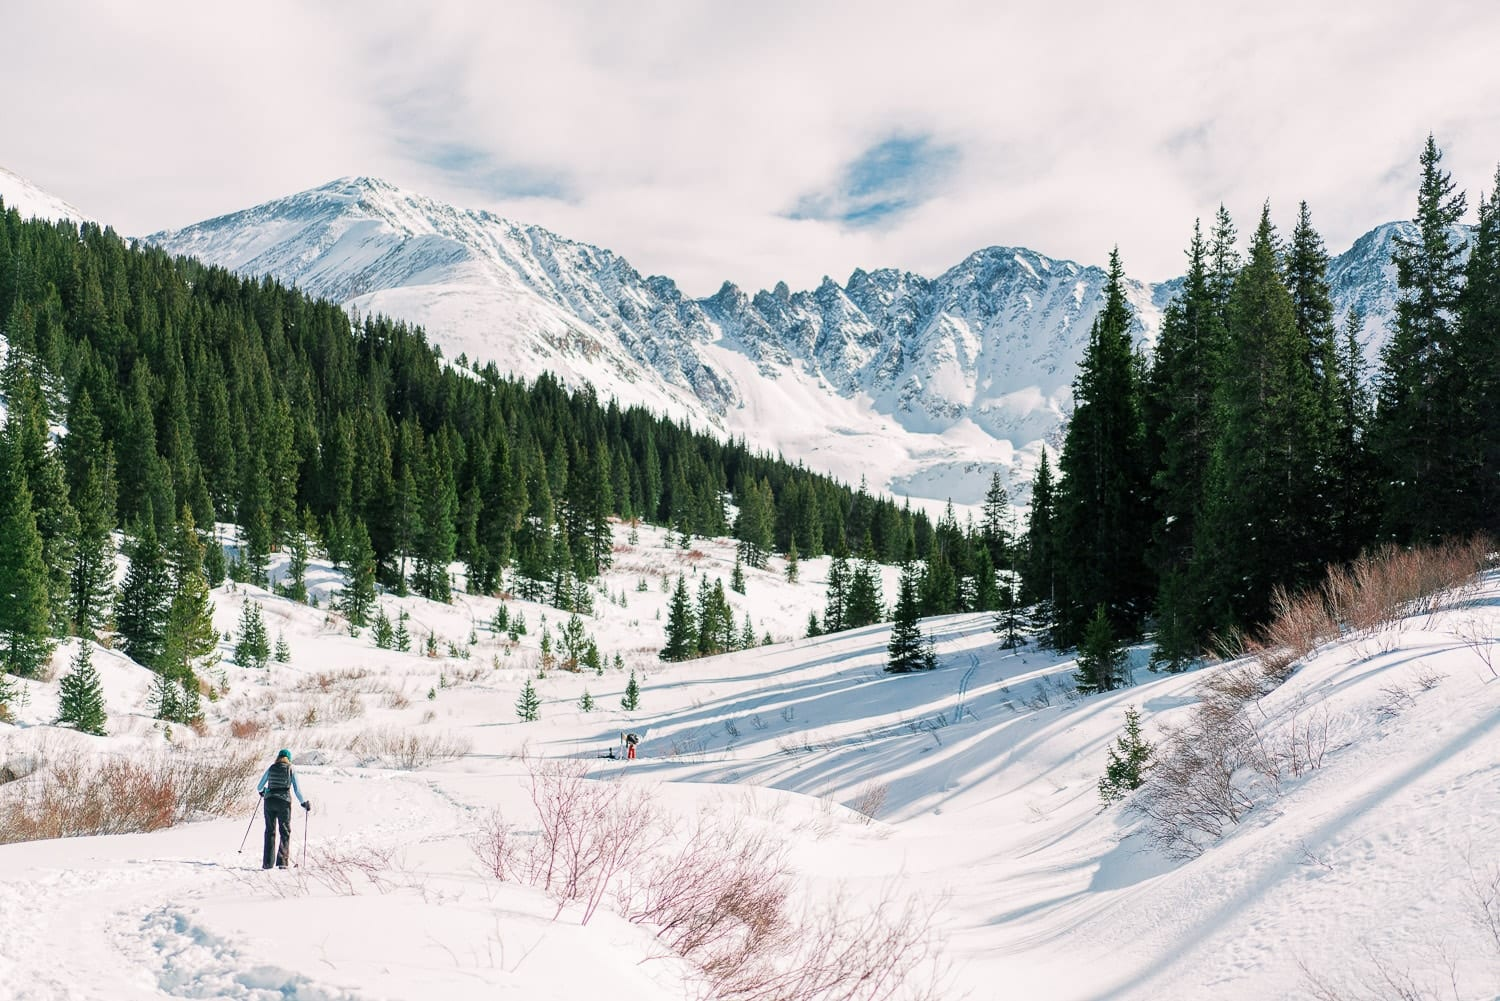 cross country skiing to Mayflower Gulch near Breckenridge, Colorado